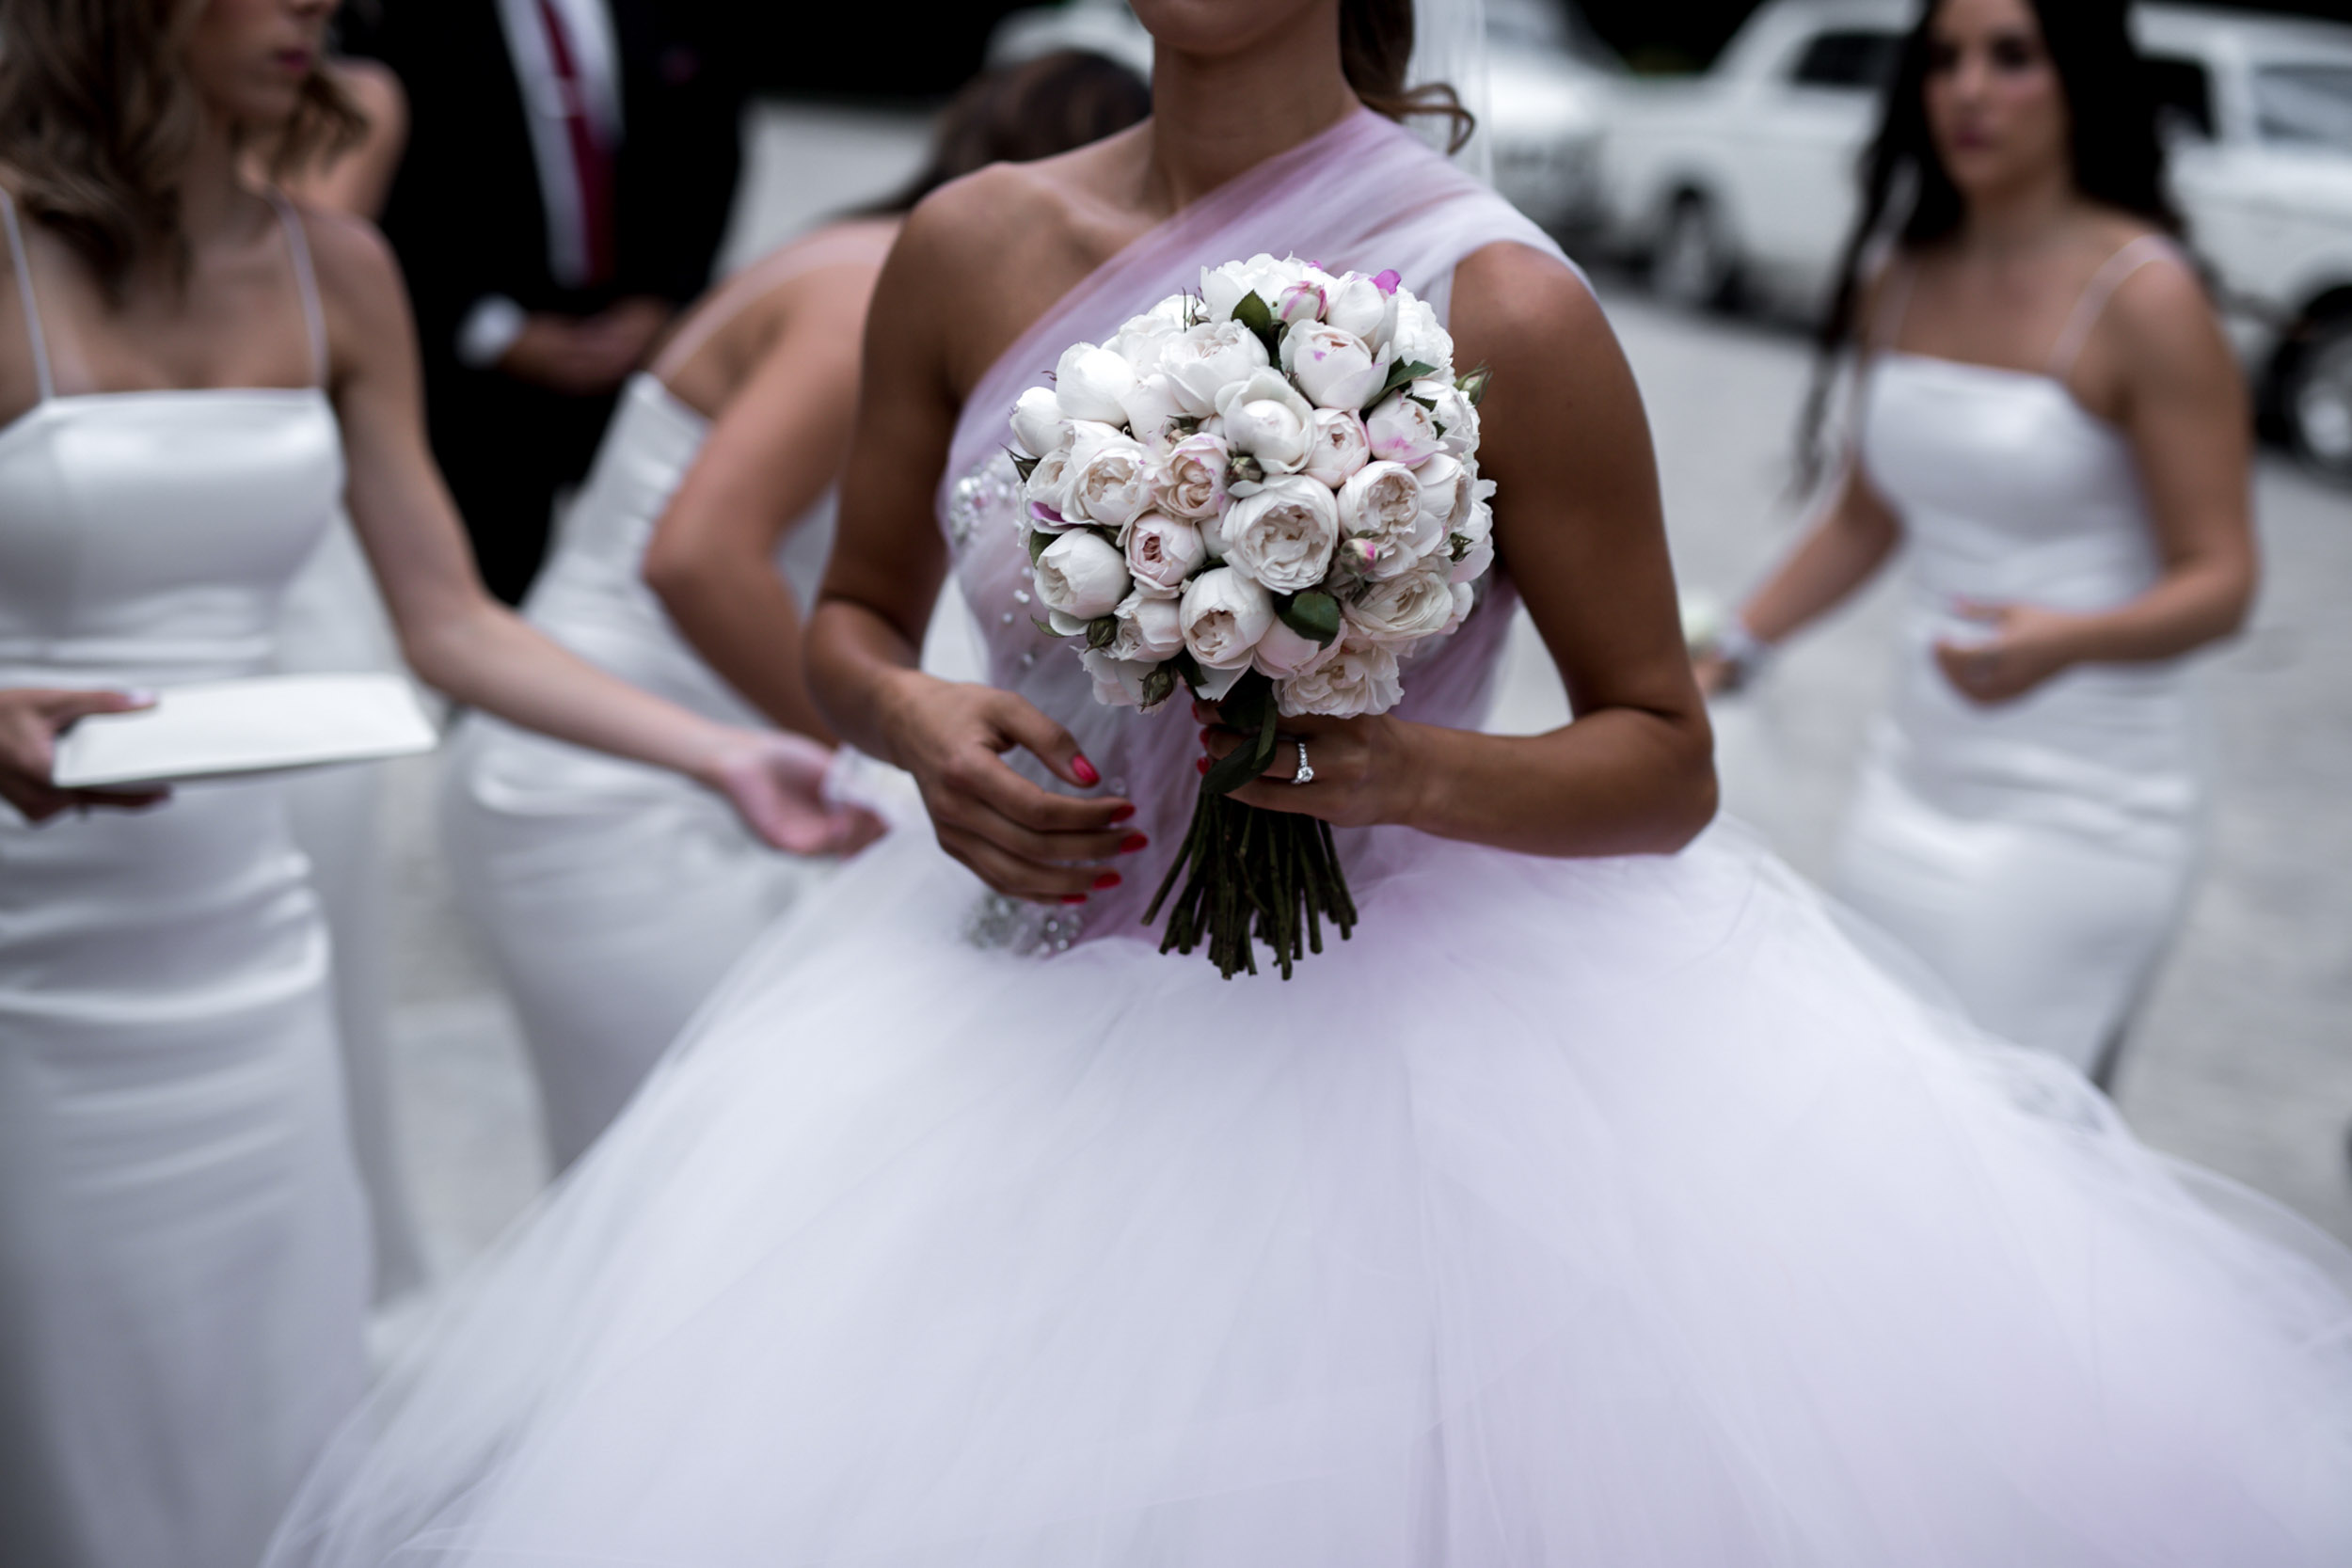 THE FLOWERS - Athanasia carried a stunning posy of blush and white peonies created by the talented Brett Matthew John.